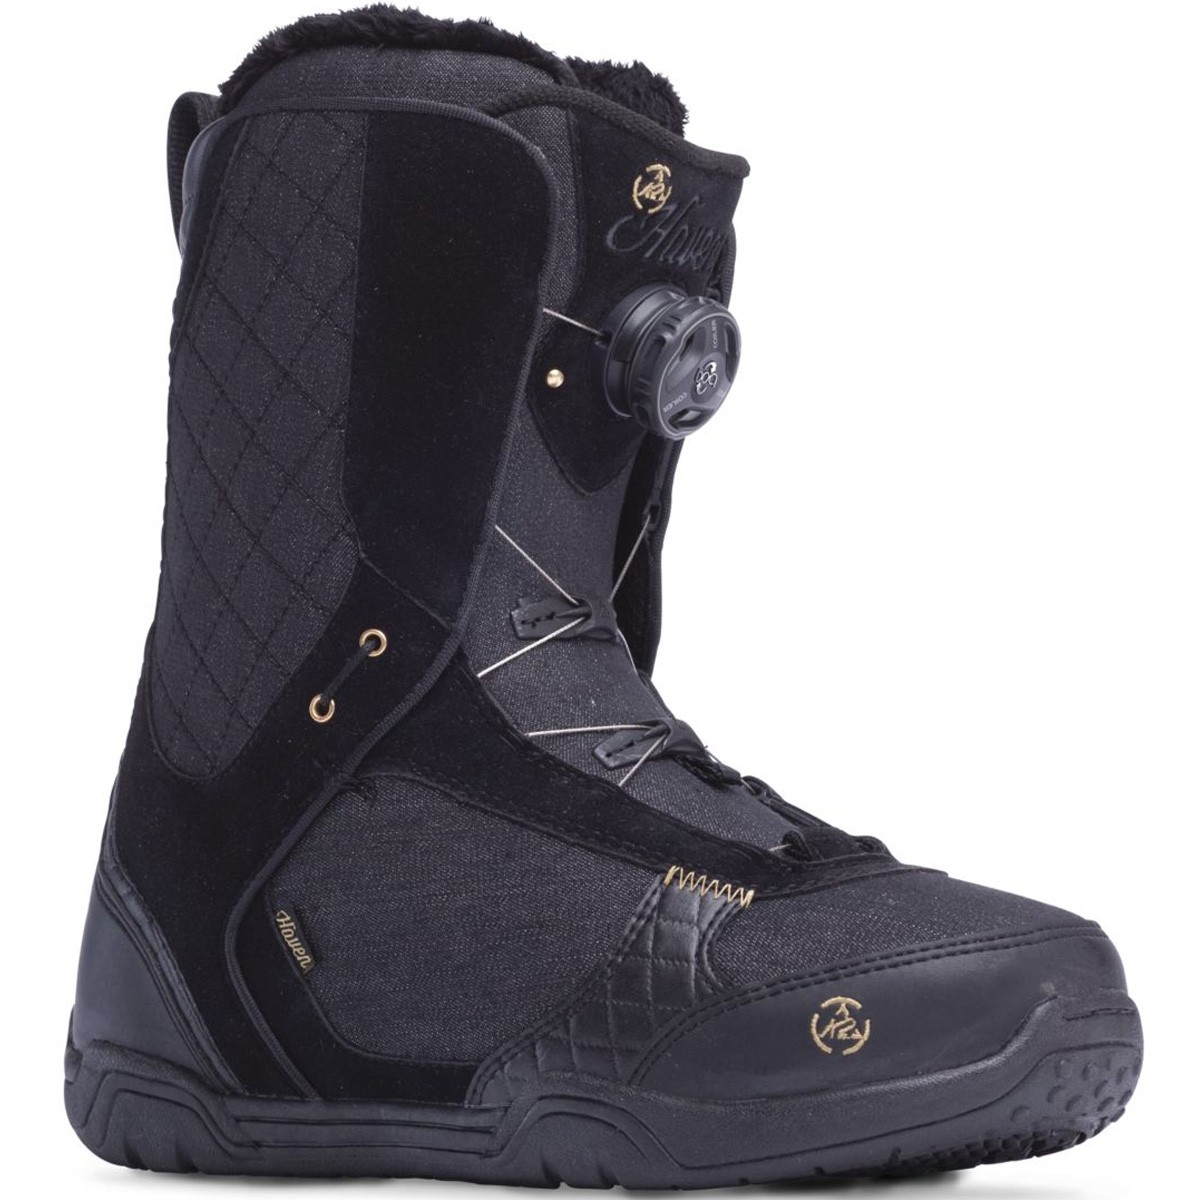 K2 Haven Women's Boots 2014 - Black